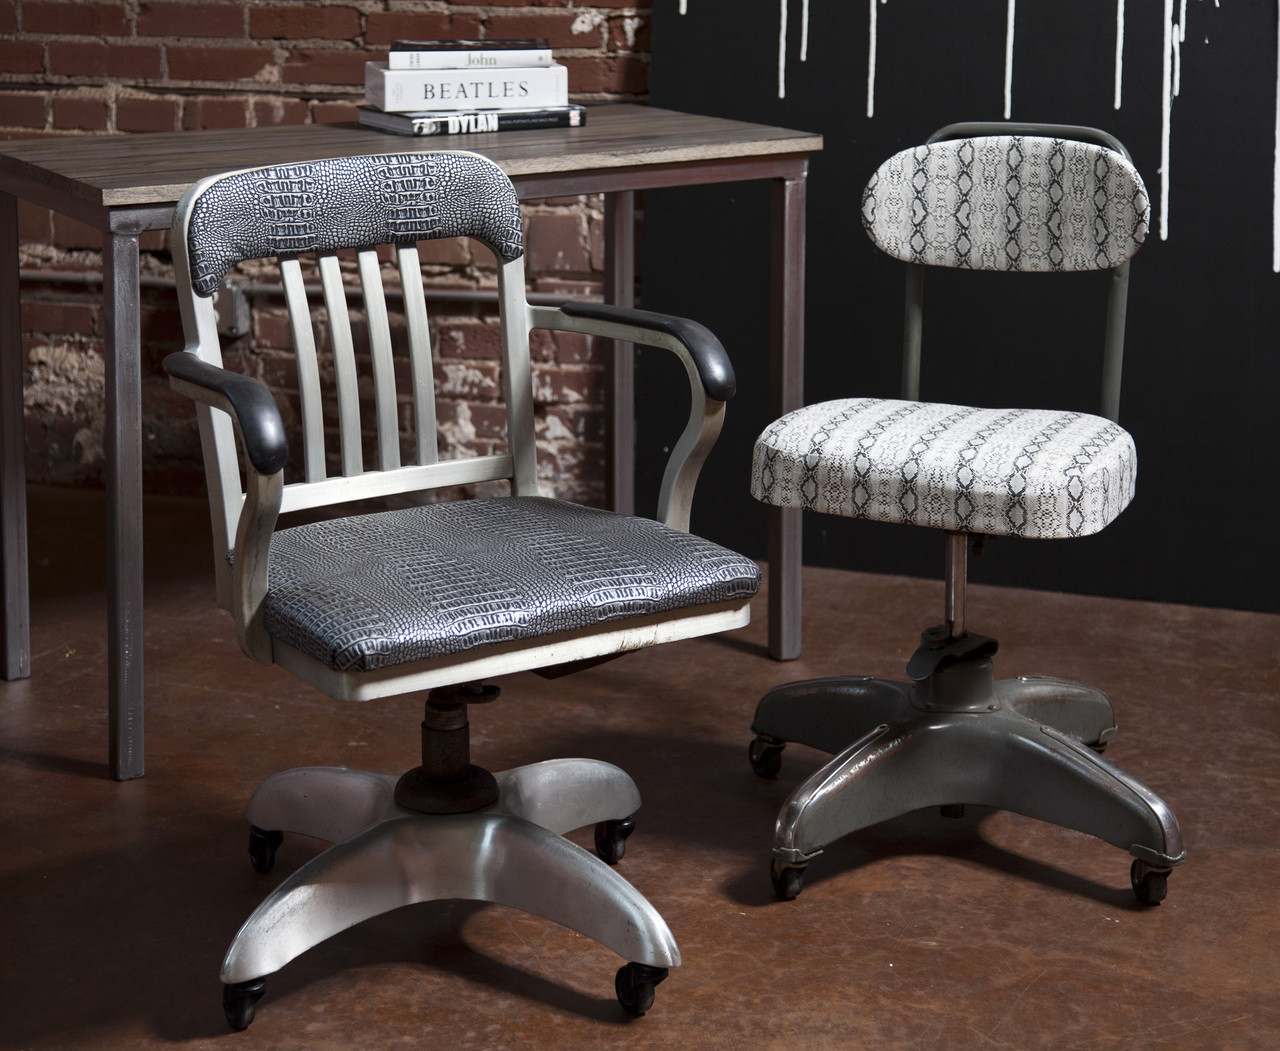 Charmant Vintage Industrial Office Chairs